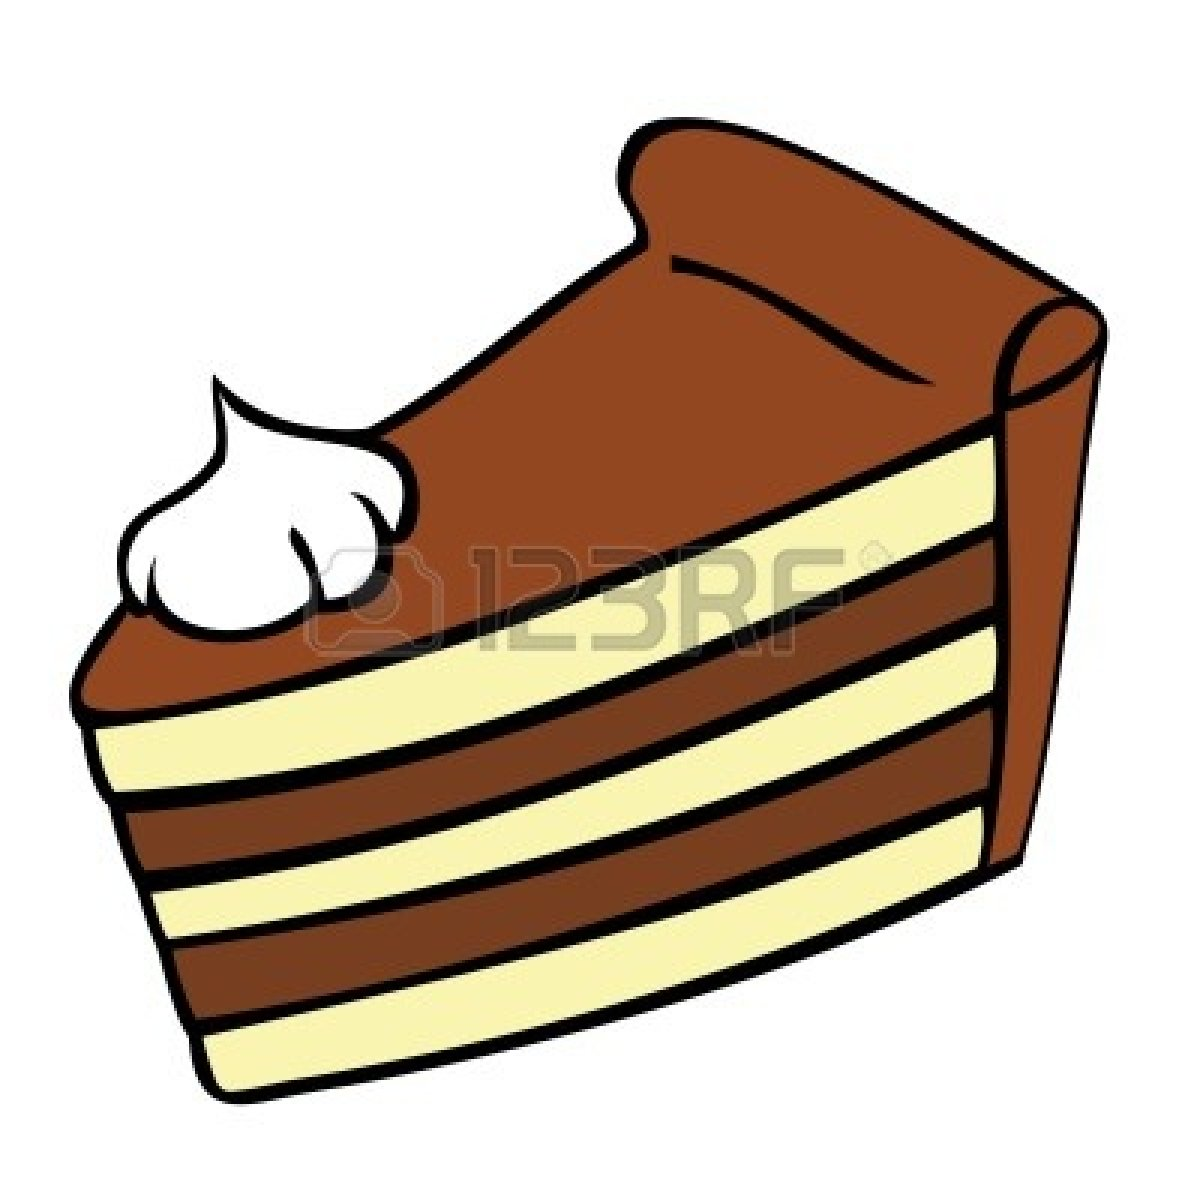 Cake slice clipart. Of black and white